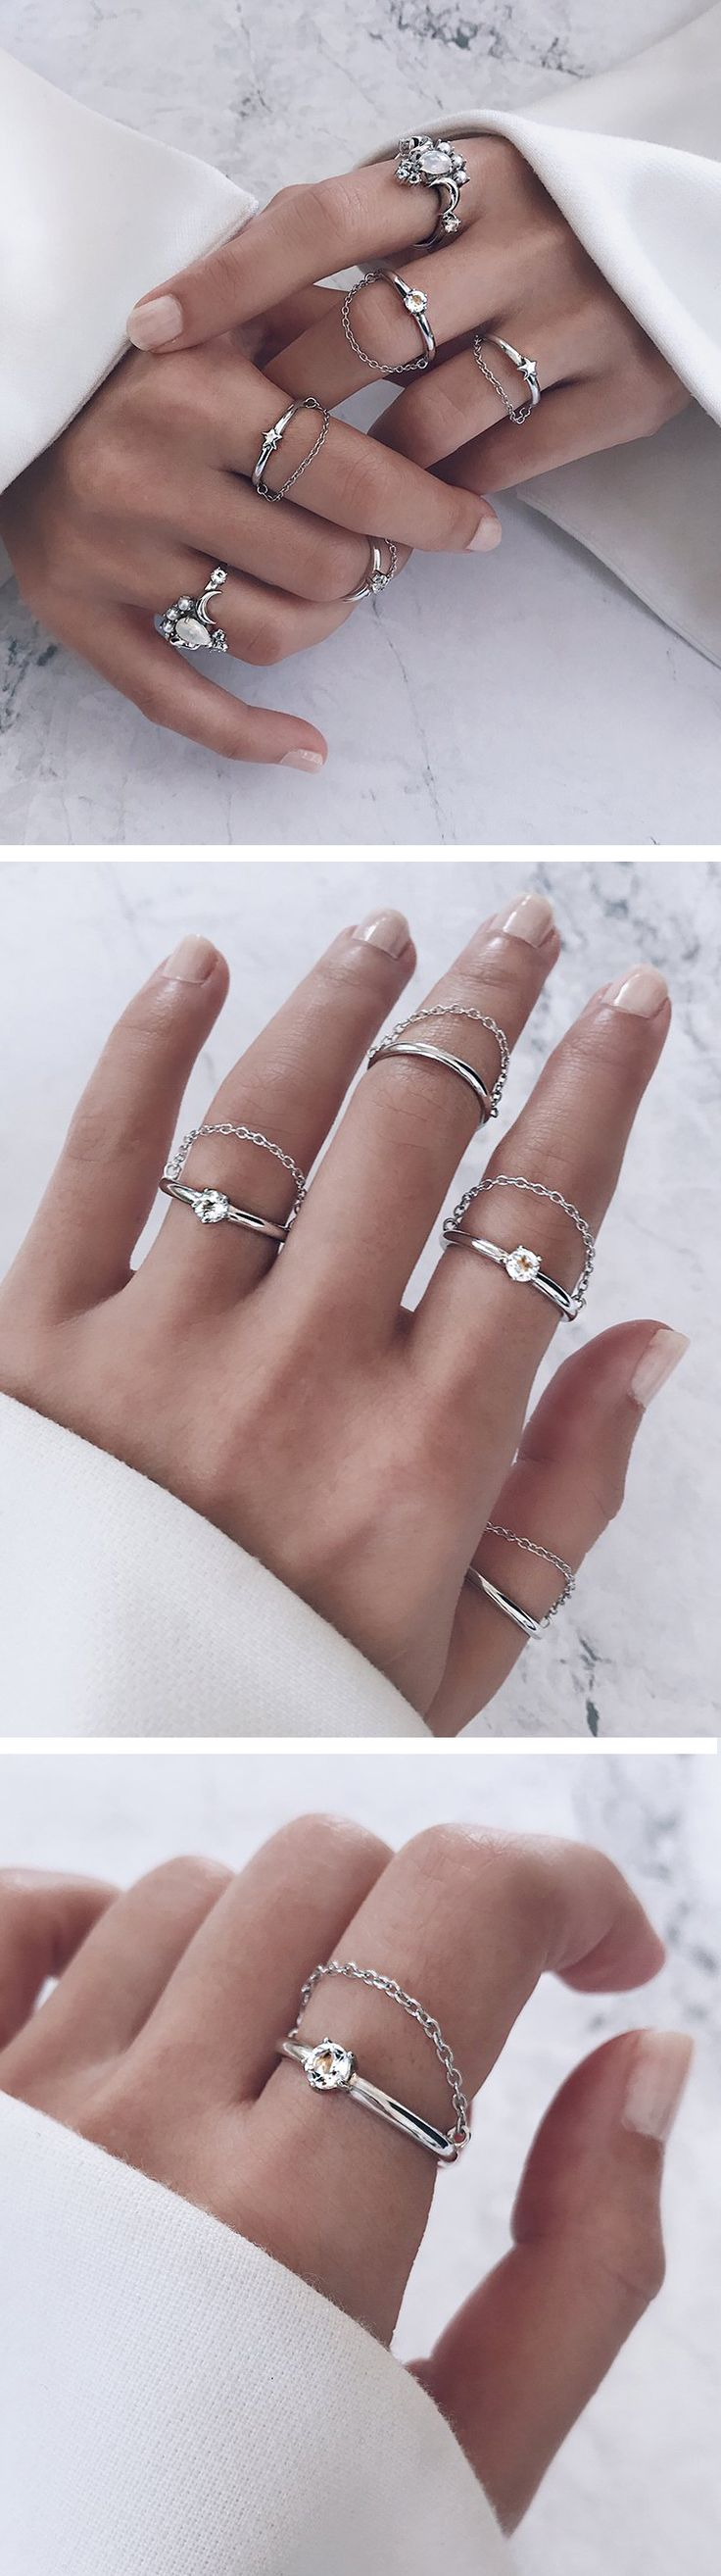 sparkly diamond ring on a classic thin band and fine chain that drapes across the finger - wear with long white sleeves or shirt - modern, beautiful minimal silver ring for those who love minimalist jewelry. Great as gifts for mum, sister, wife, birthday and valentine.